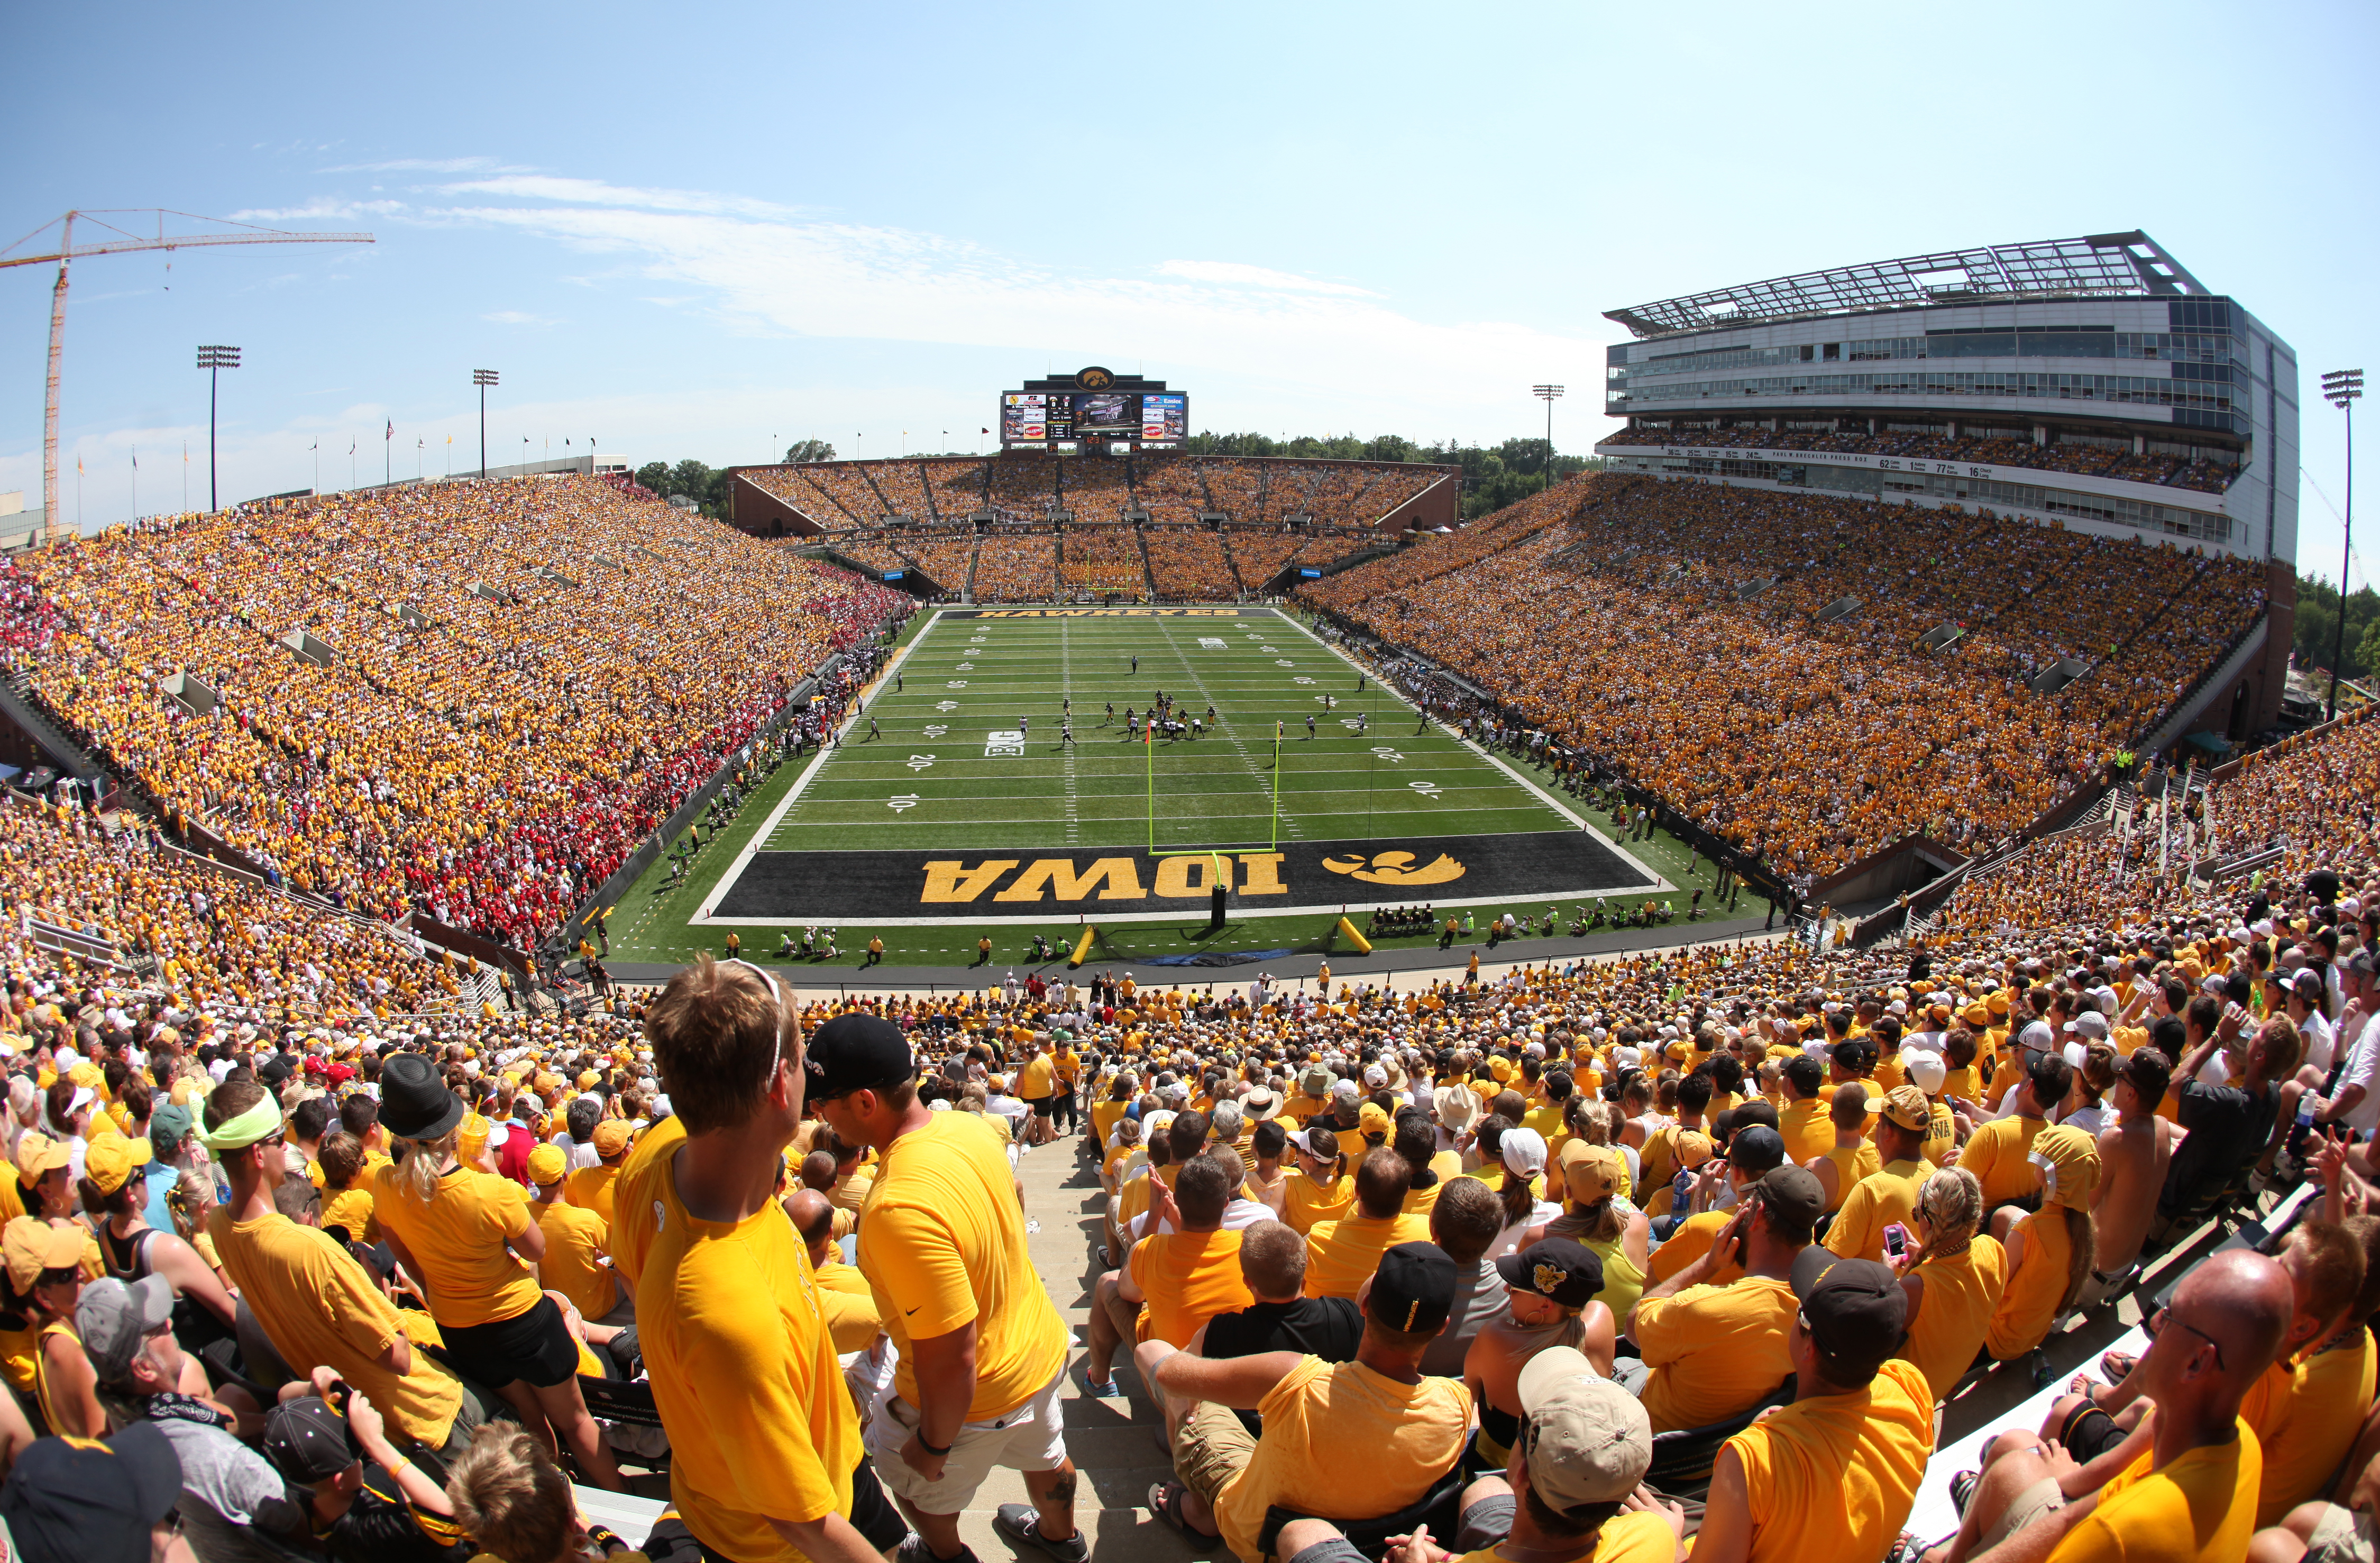 IOWA CITY, IOWA- AUGUST 31: General view as fans settle in to watch the match-up between the Iowa Hawkeyes and the Northern Illinois Huskies during the first quarter on August 31, 2013 at Kinnick Stadium in Iowa City, Iowa. Northern Illinois won 30-27. (Photo by Matthew Holst/Getty Images)